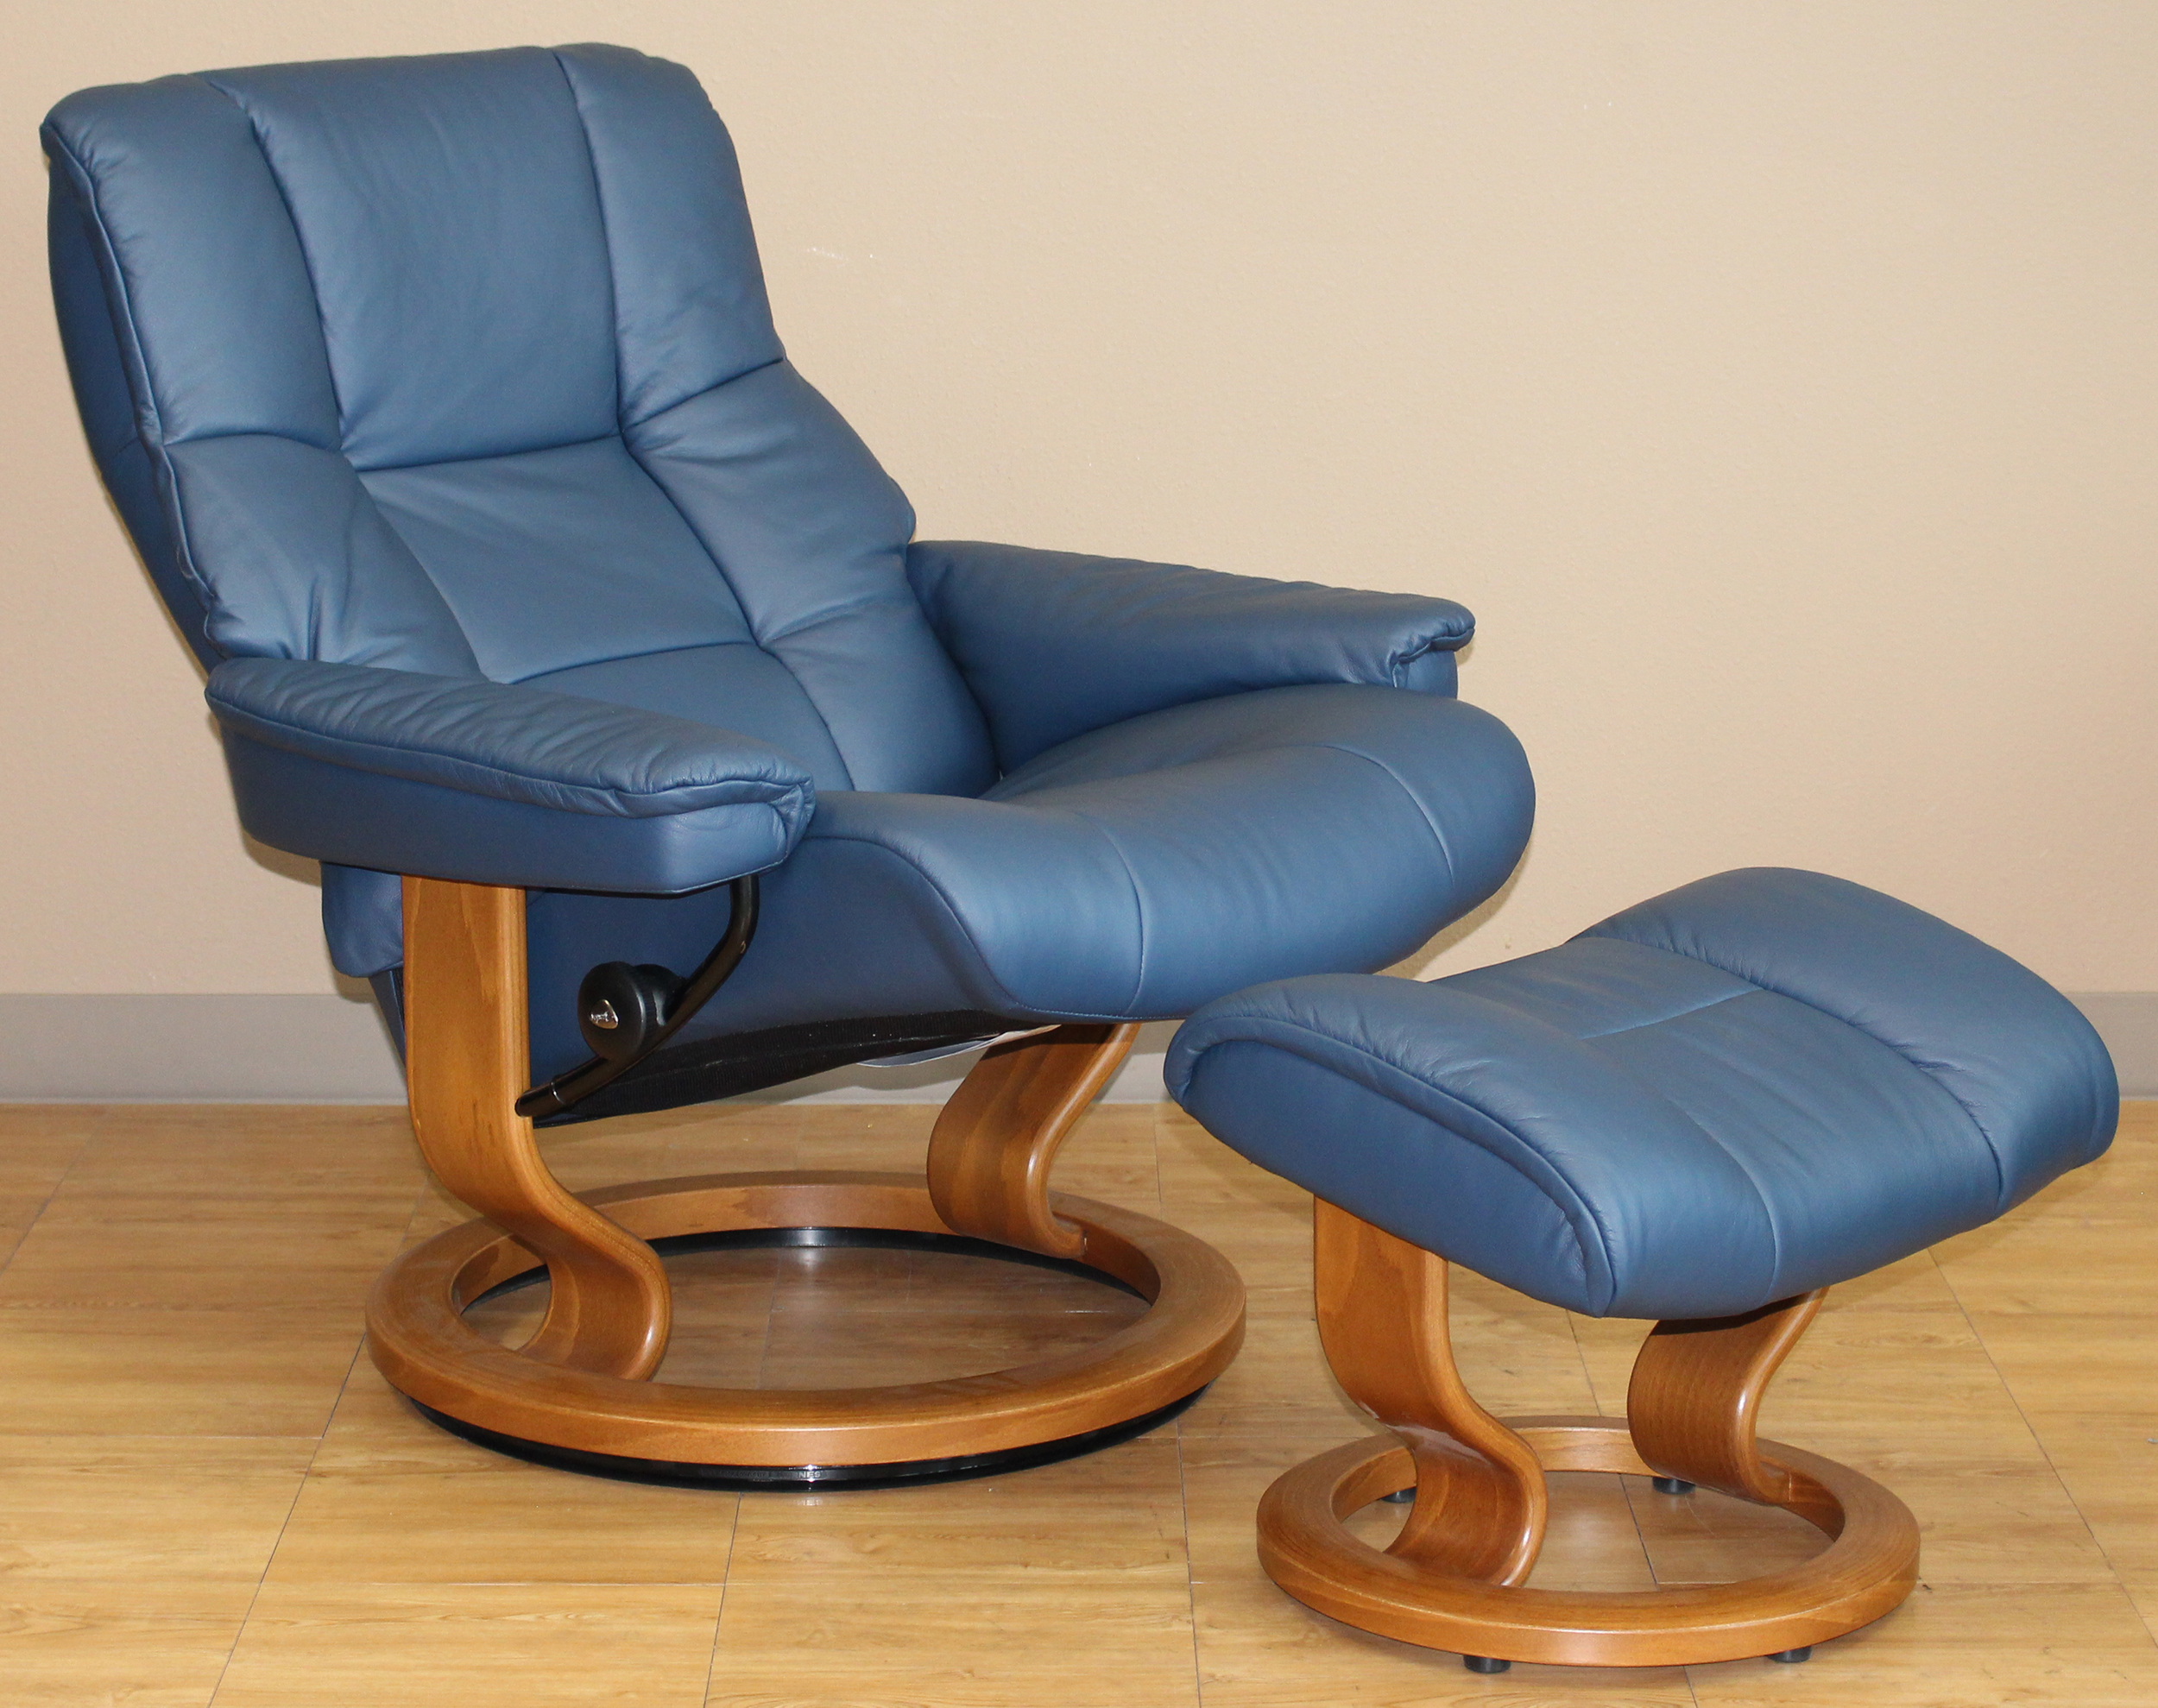 Blue Leather Club Chair Stressless Kensington Large Mayfair Paloma Oxford Blue